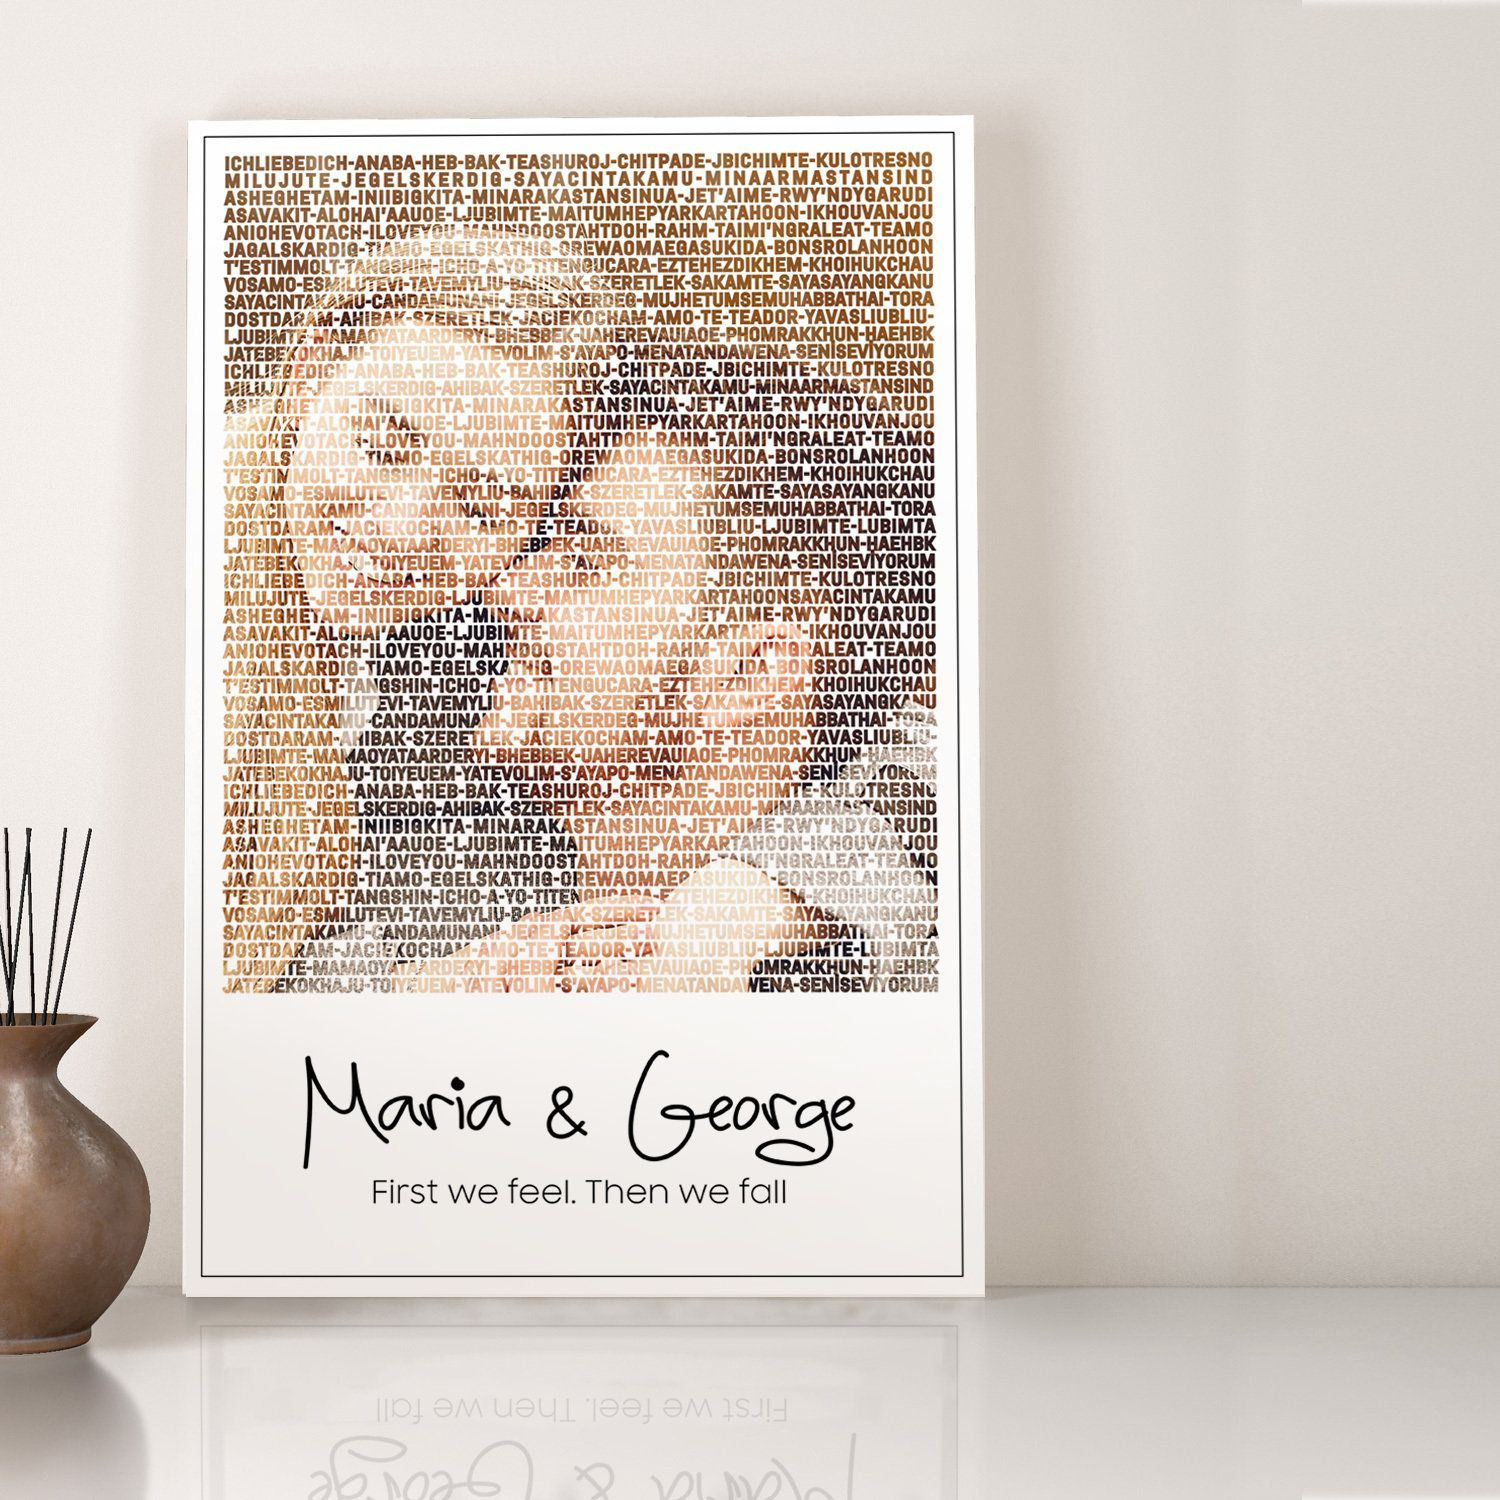 Custom Canvas Photo Gift For Her 2nd Anniversary Gift Photo Etsy In 2020 Canvas Photo Gifts Painting Gift Canvas Gift